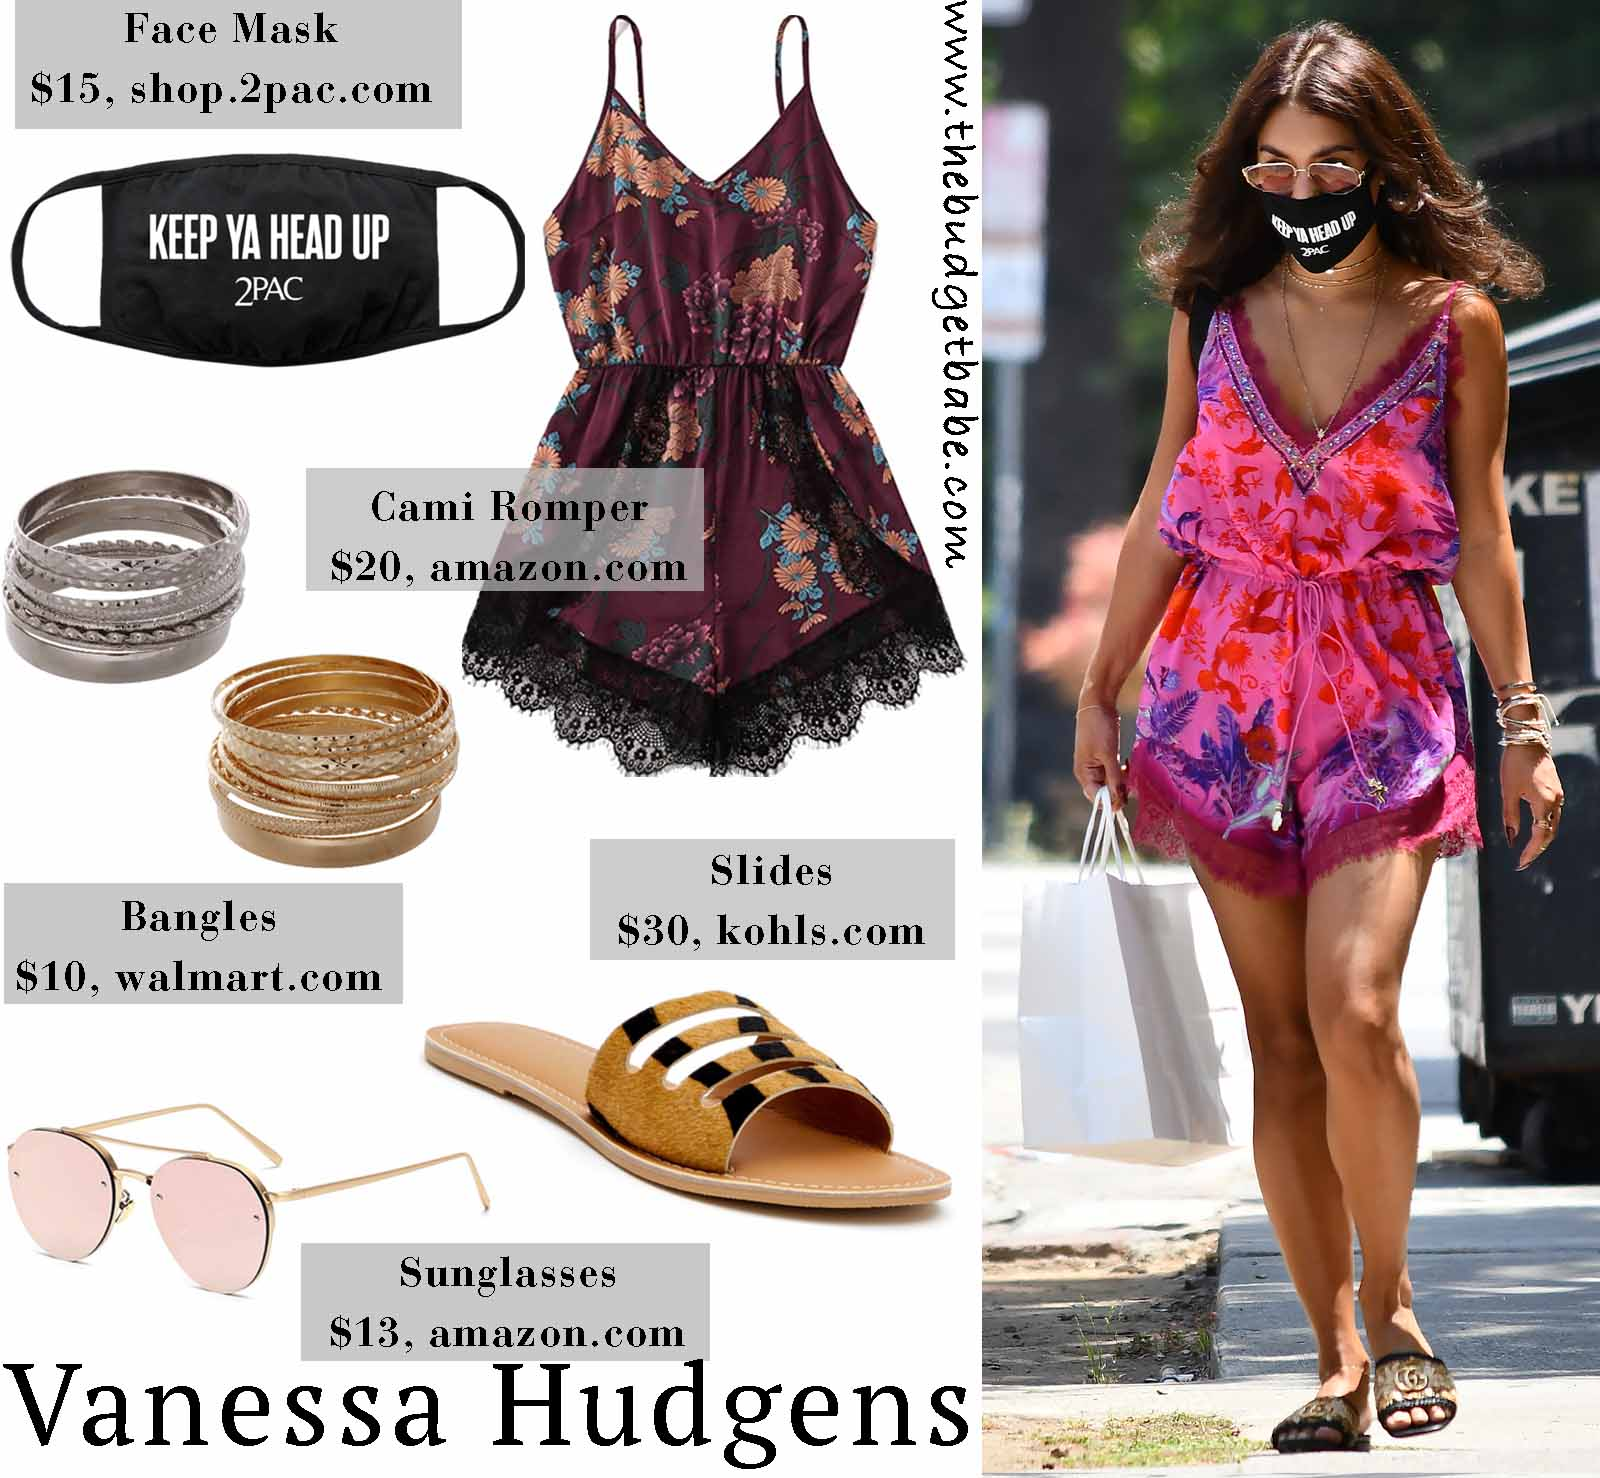 Vanessa Hudgens beats the heat in a satin romper!